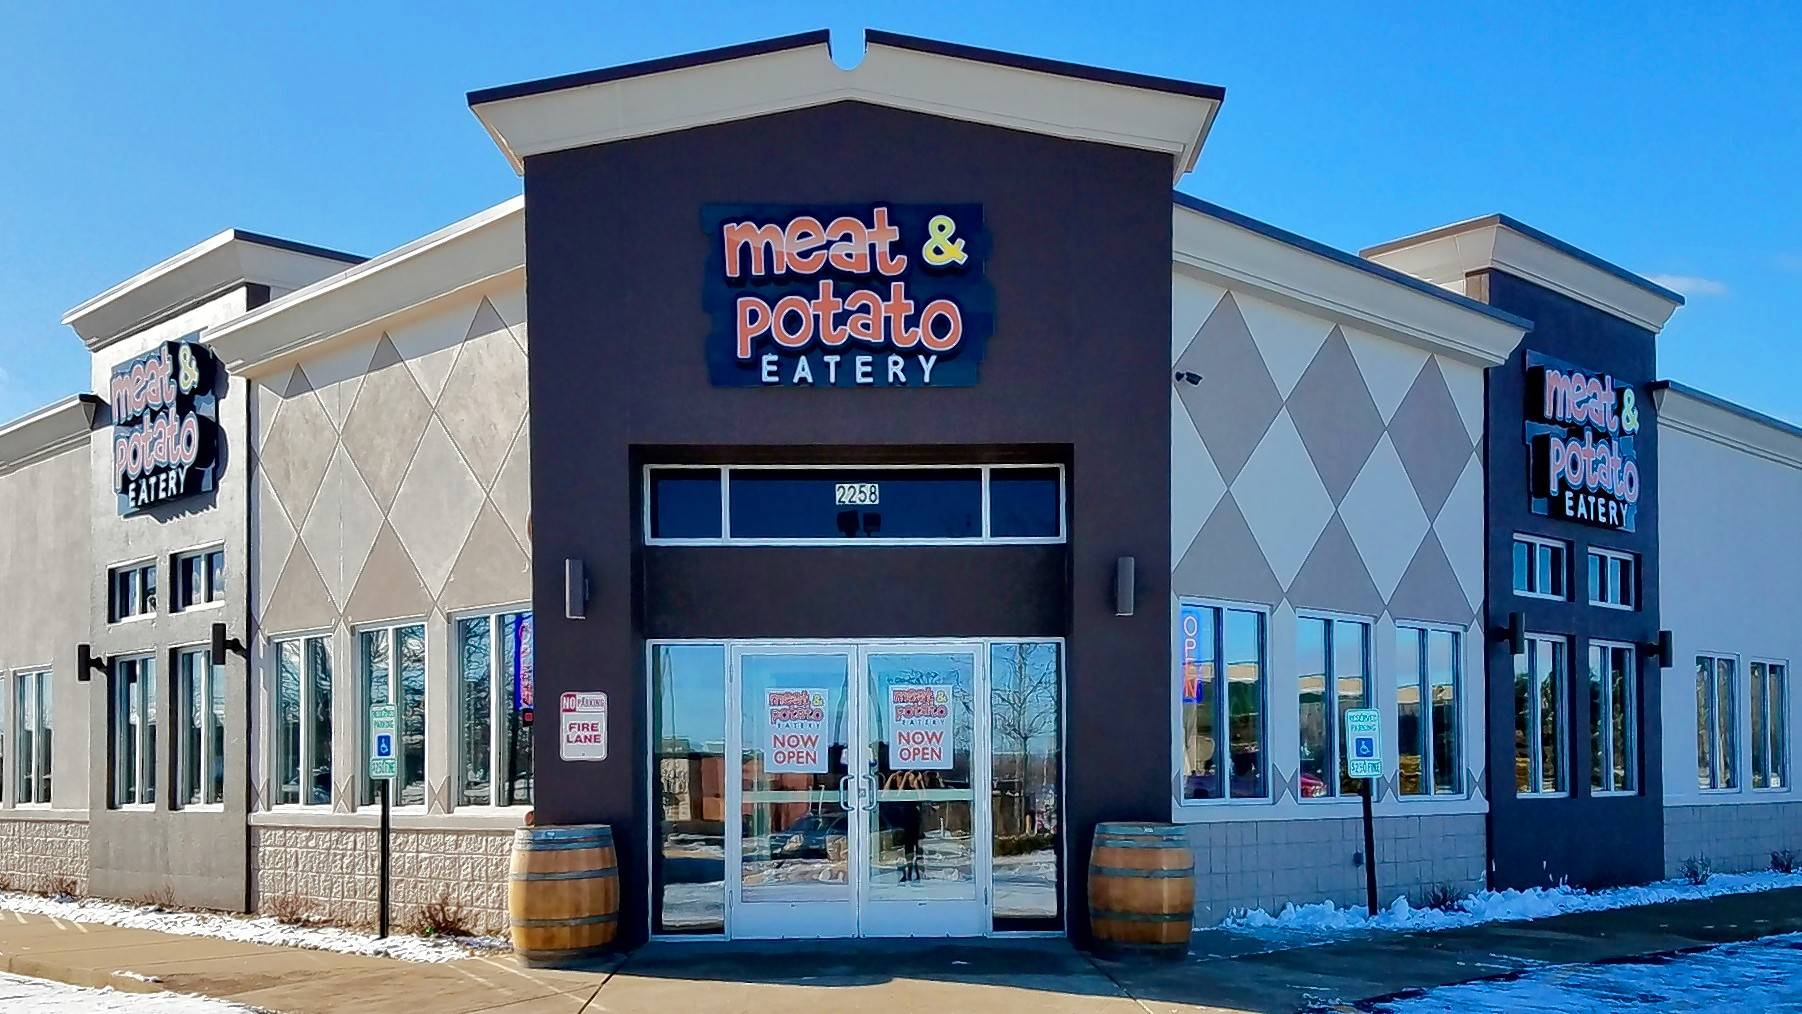 Meat & Potato Eatery is opening its second location Wednesday on Randall Road in Carpentersville.